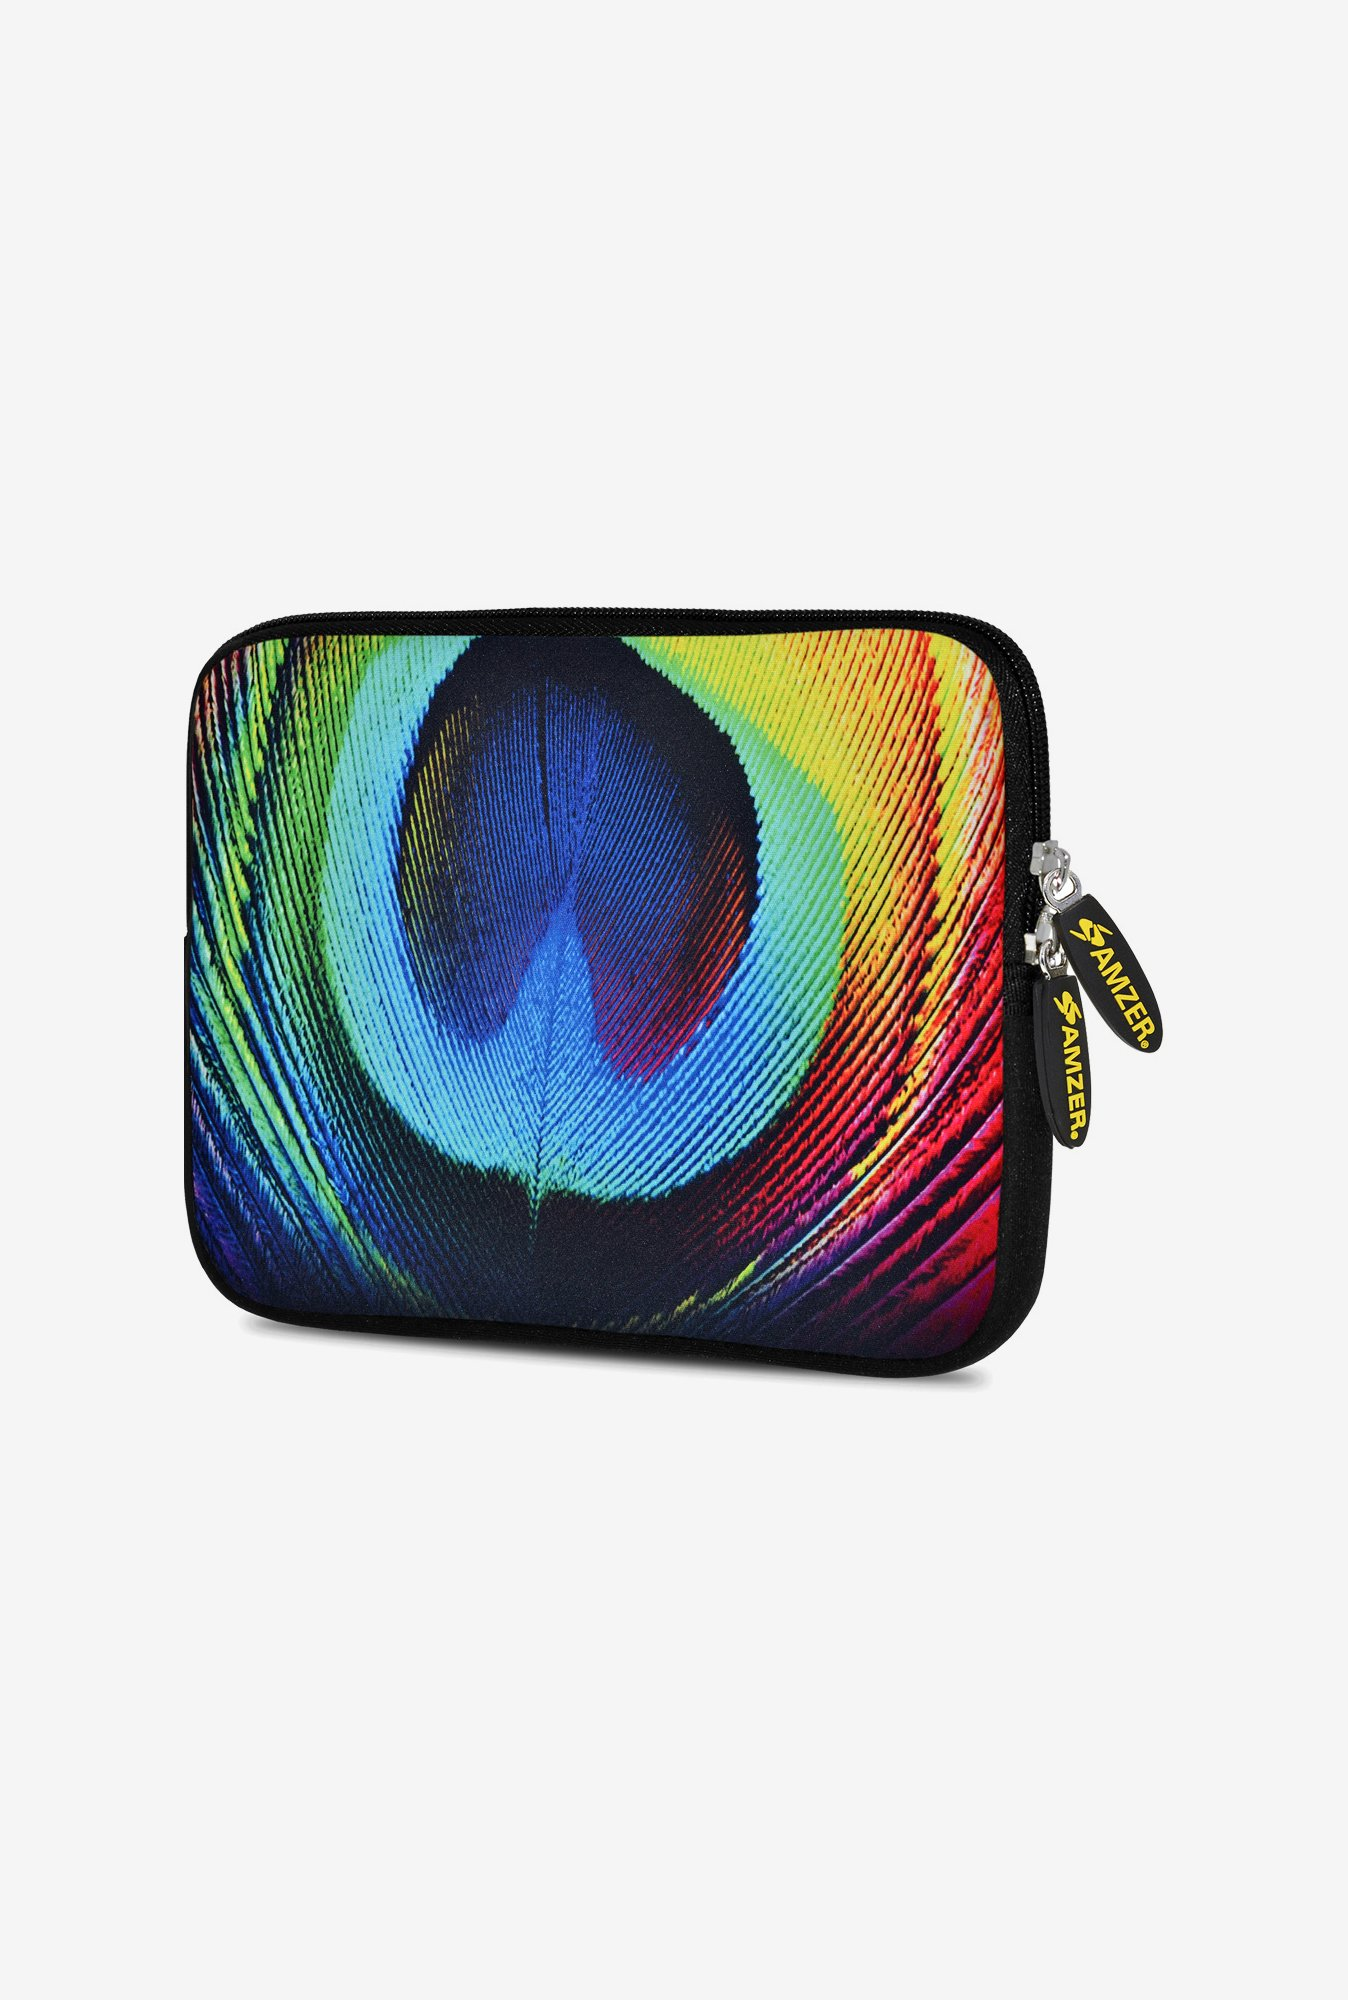 Amzer 10.5 Inch Neoprene Sleeve - Peacock Close